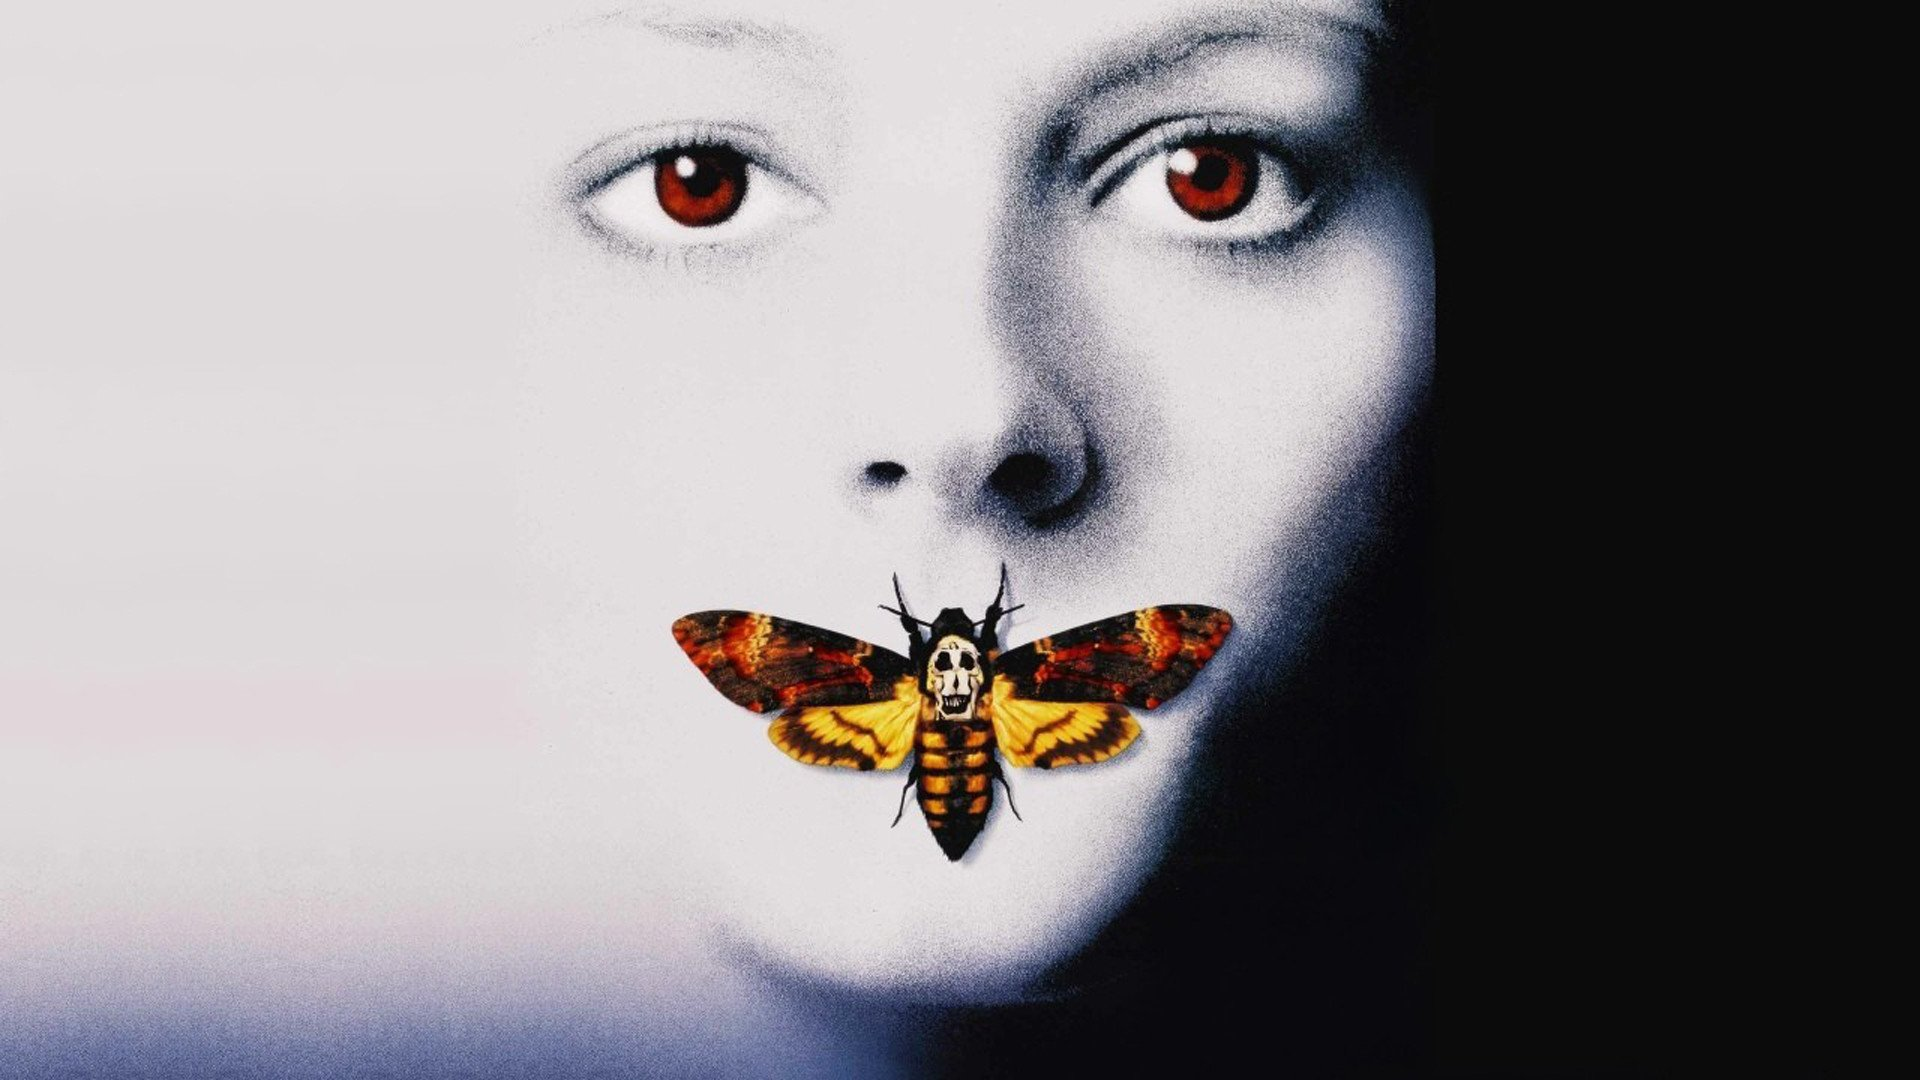 The Silence Of The Lambs Wallpaper 1   1920 X 1080 stmednet 1920x1080